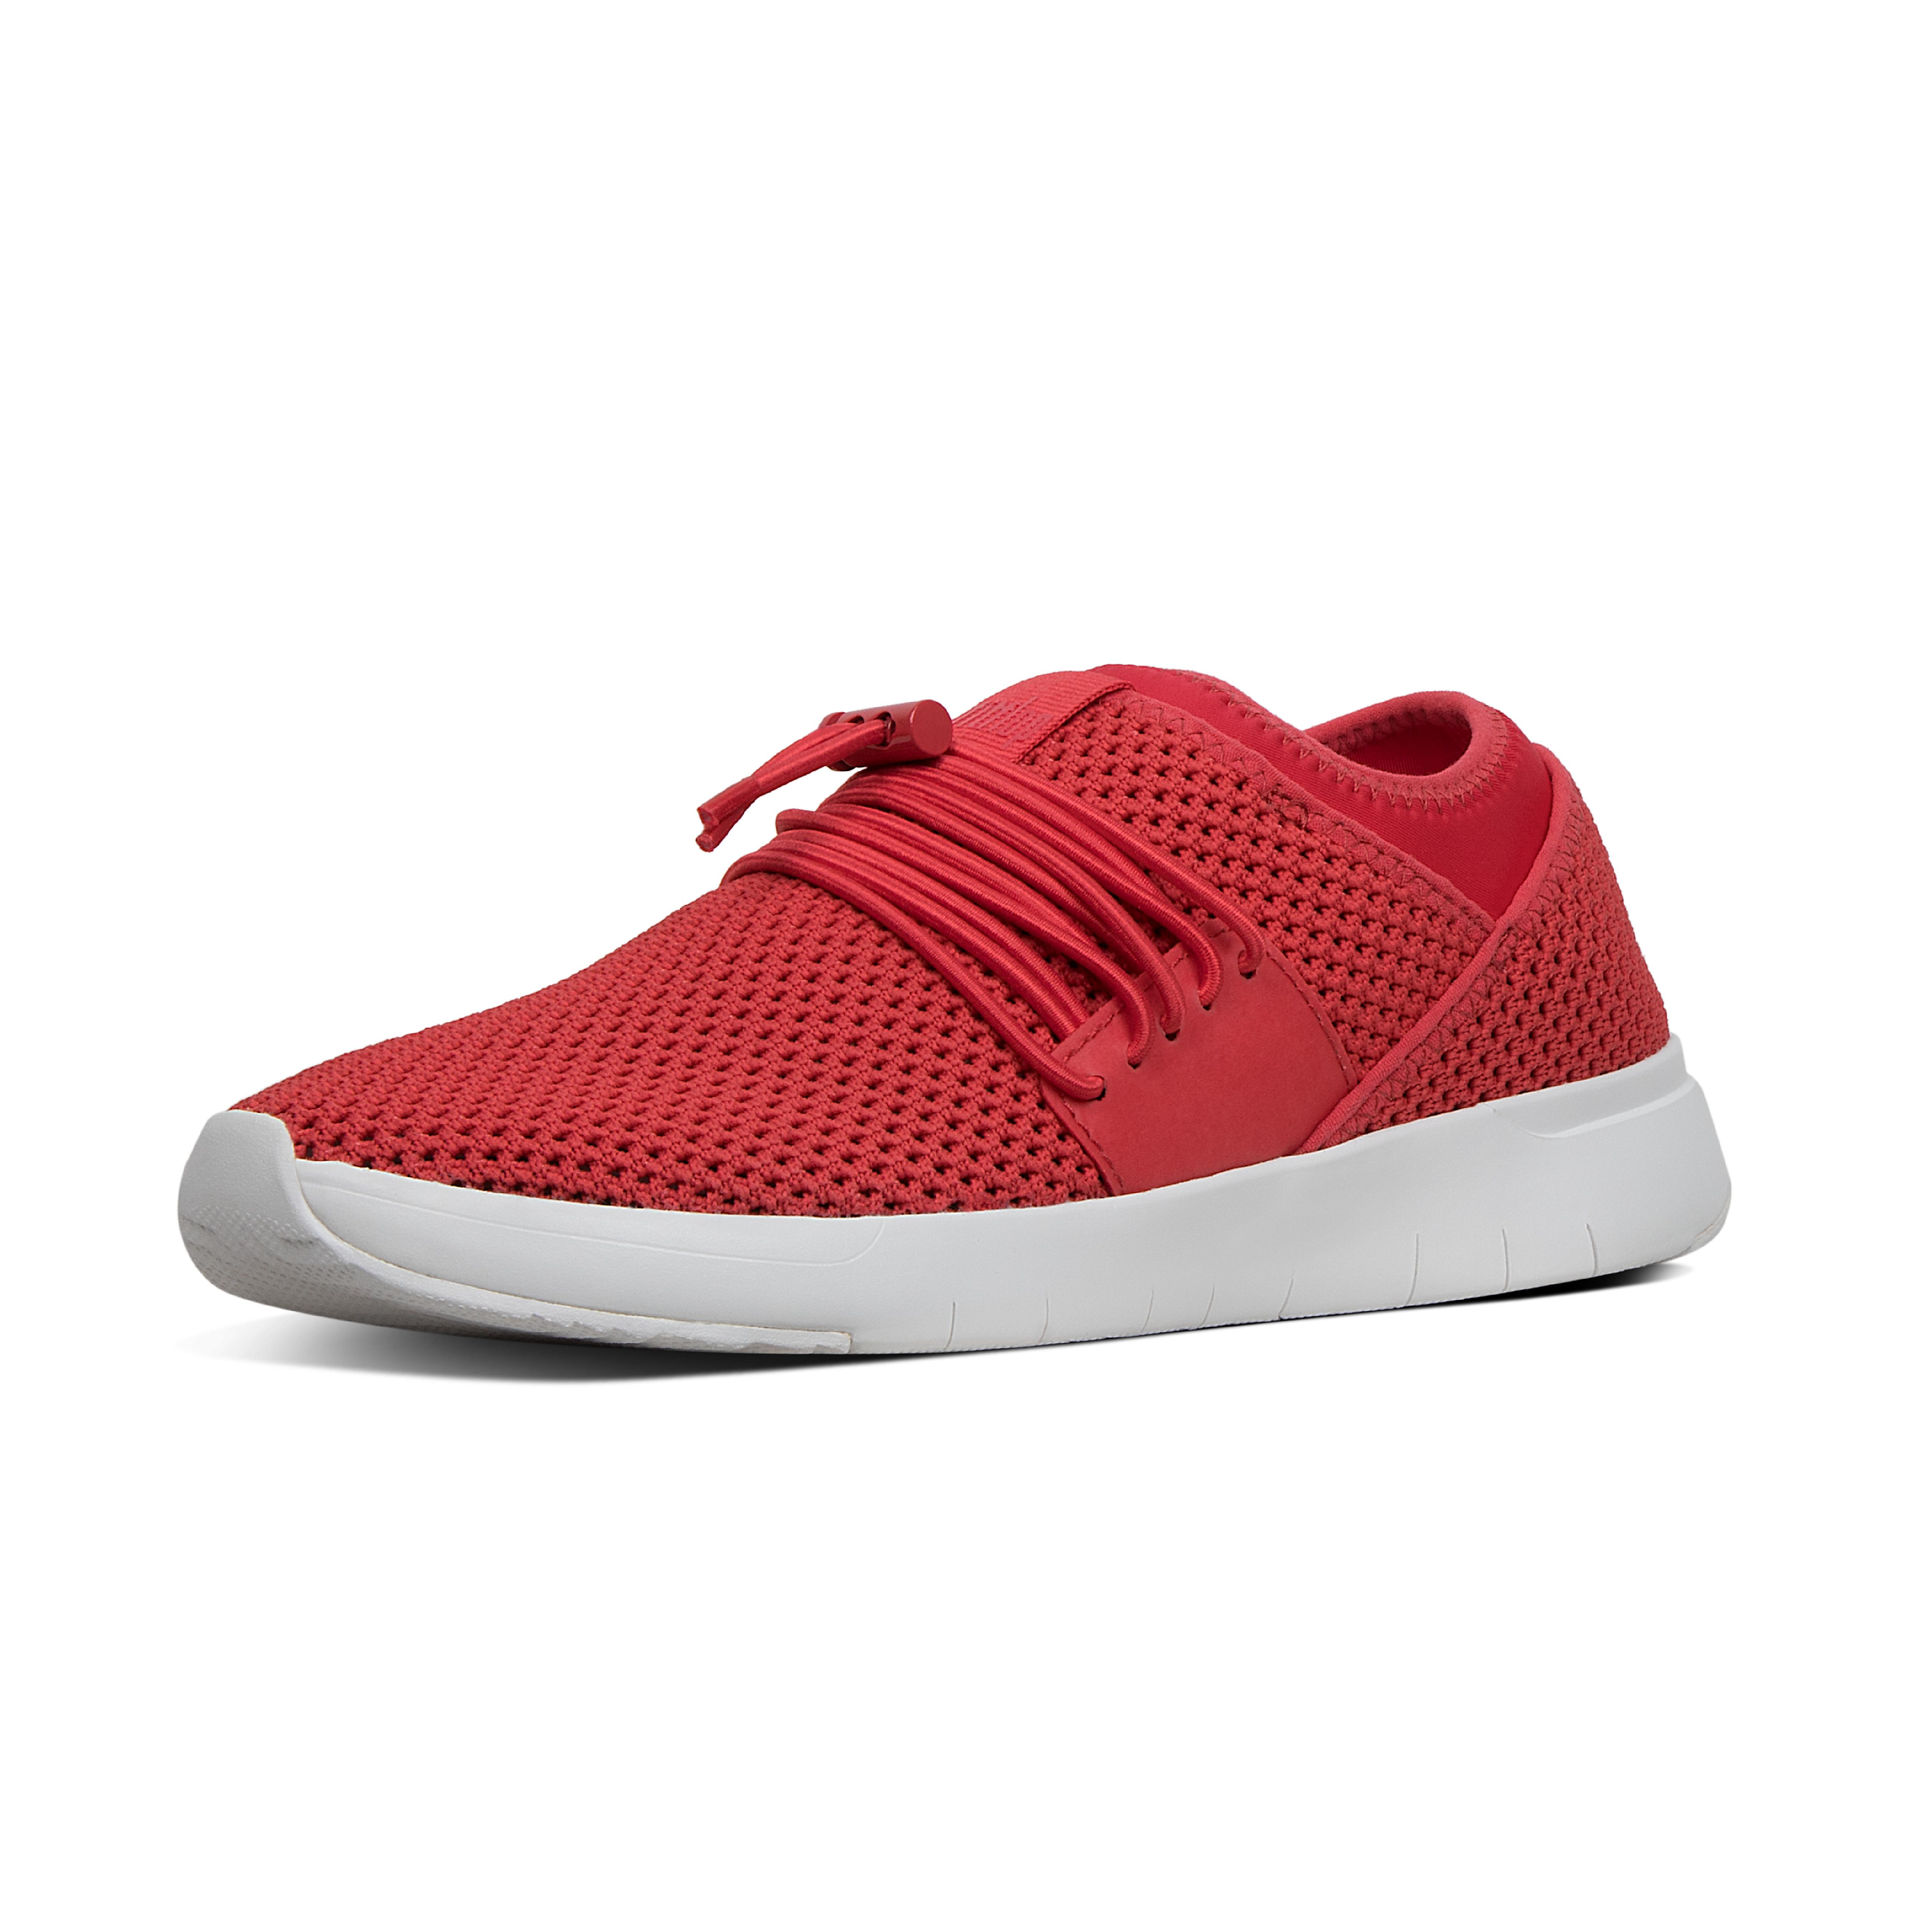 Airmesh lace up sneaker passion red r64 695?v=3